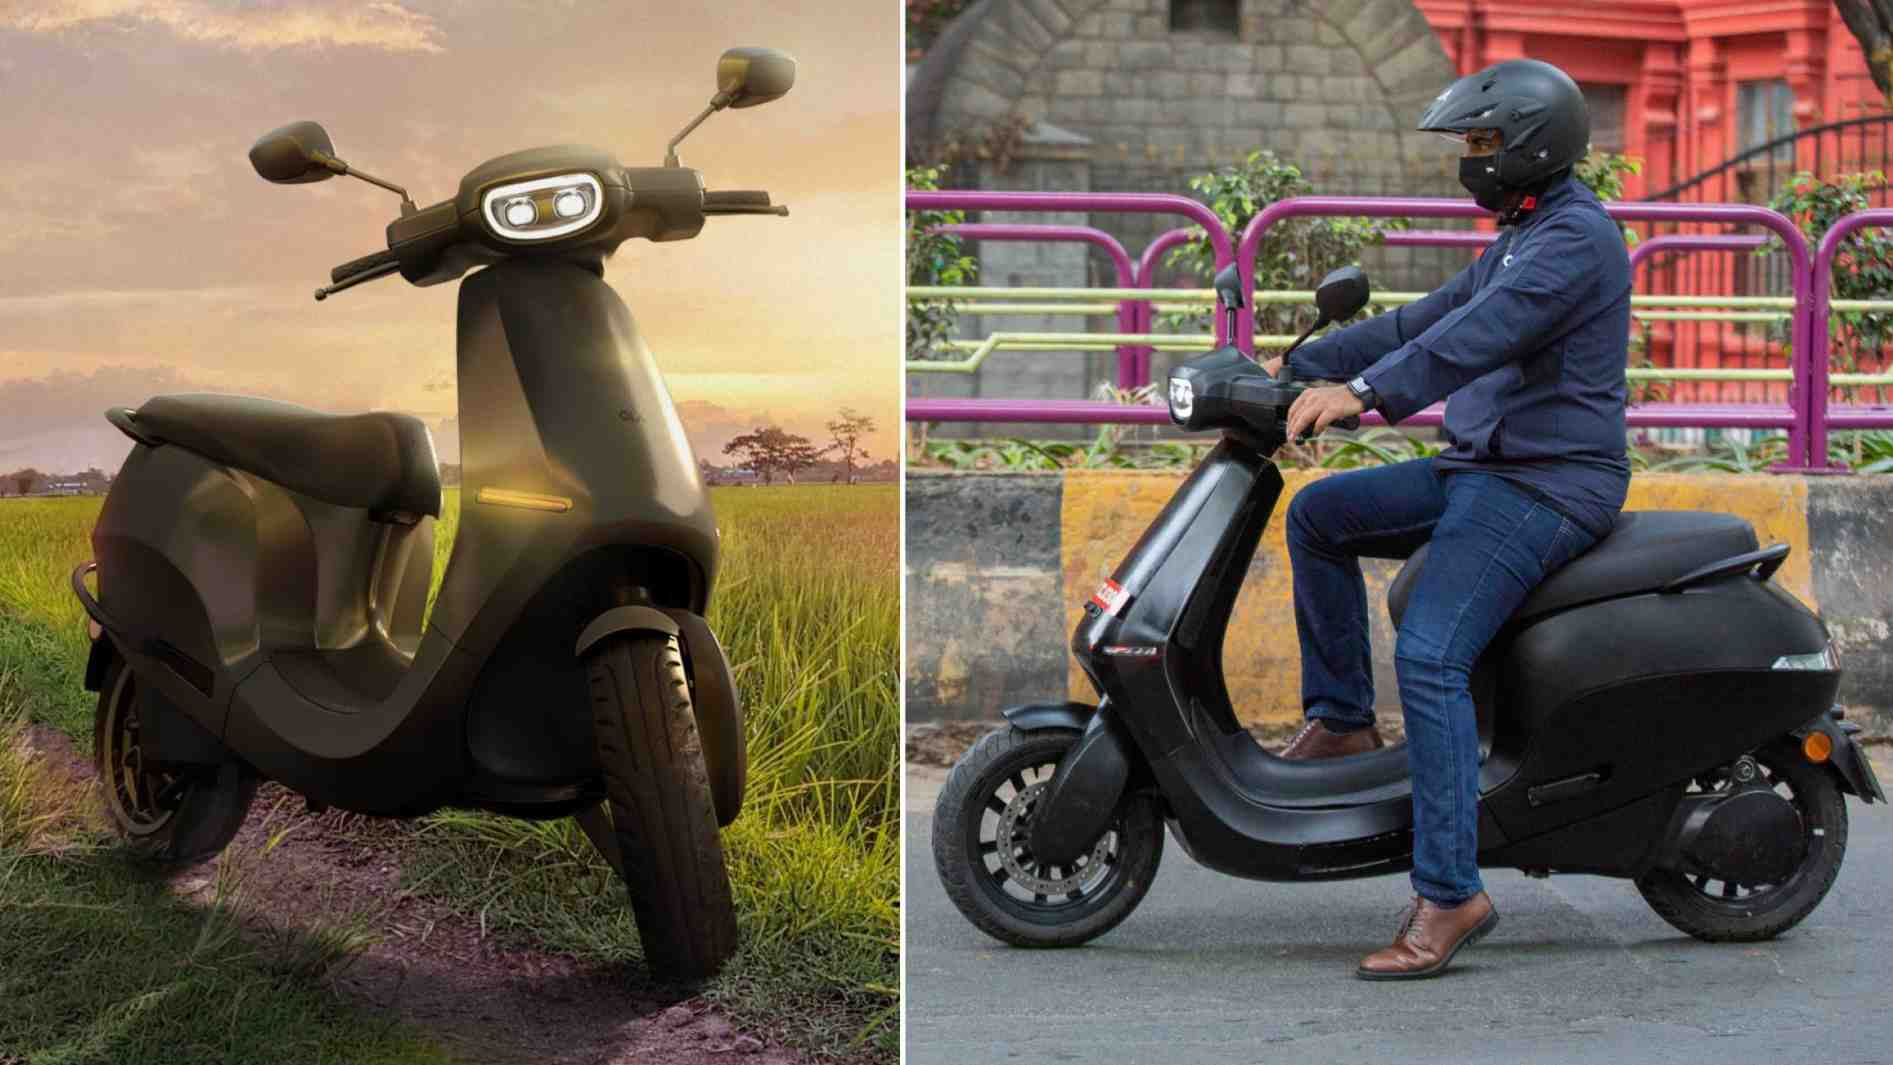 The Ola electric scooter is said to have class-leading acceleration and range figures. Image: Ola Electric/Tech2